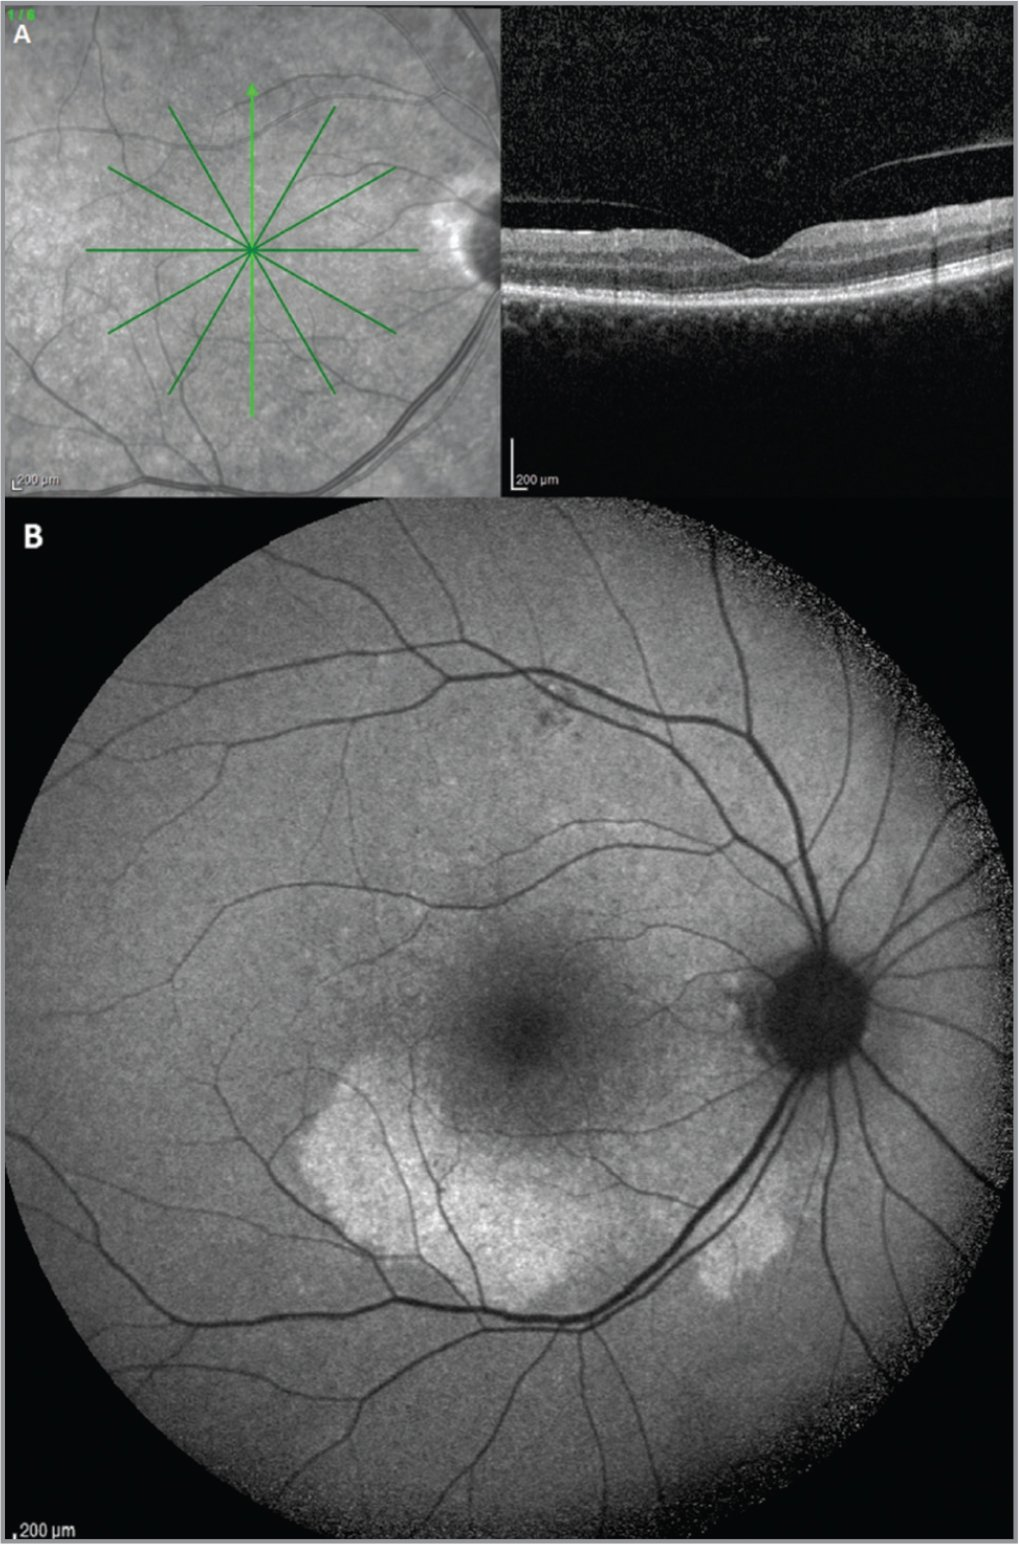 (A, B) At 1 month from presentation, spectral-domain optical coherence tomography scans showed complete restoration of the inner segment/outer segment junction and normalization of the contour of the retinal pigment epithelium layer (A); fundus autofluorescence showed the persistence of hyperautofluorescent areas (B).